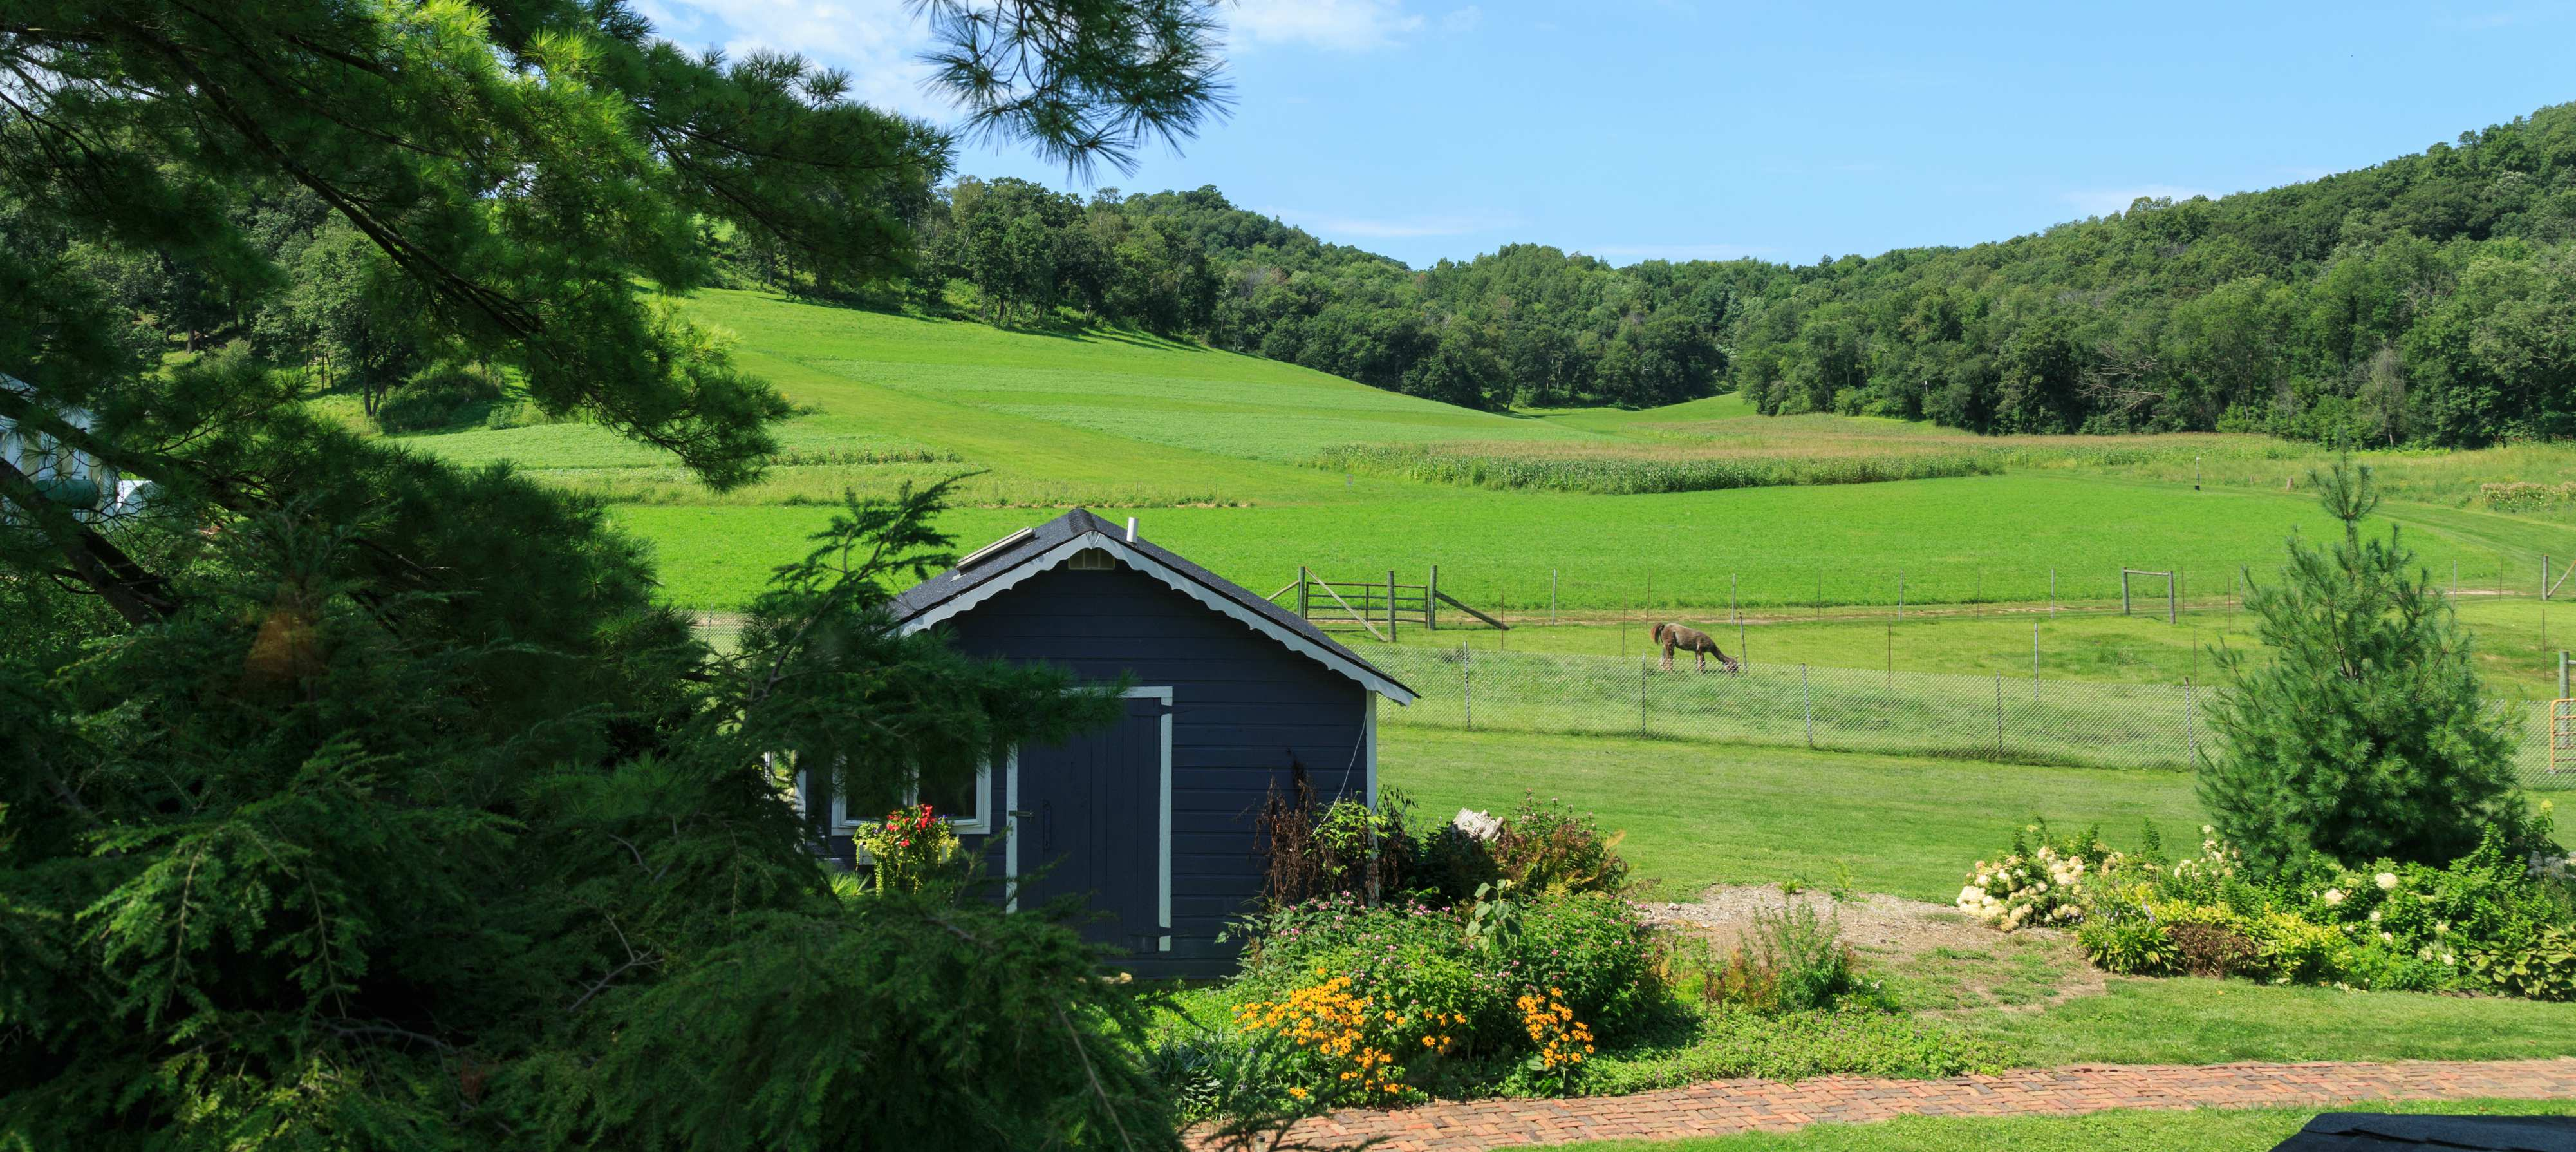 Family Vacation in Wisconsin  - The Cottage with view of llama pen, sledding hill and valley